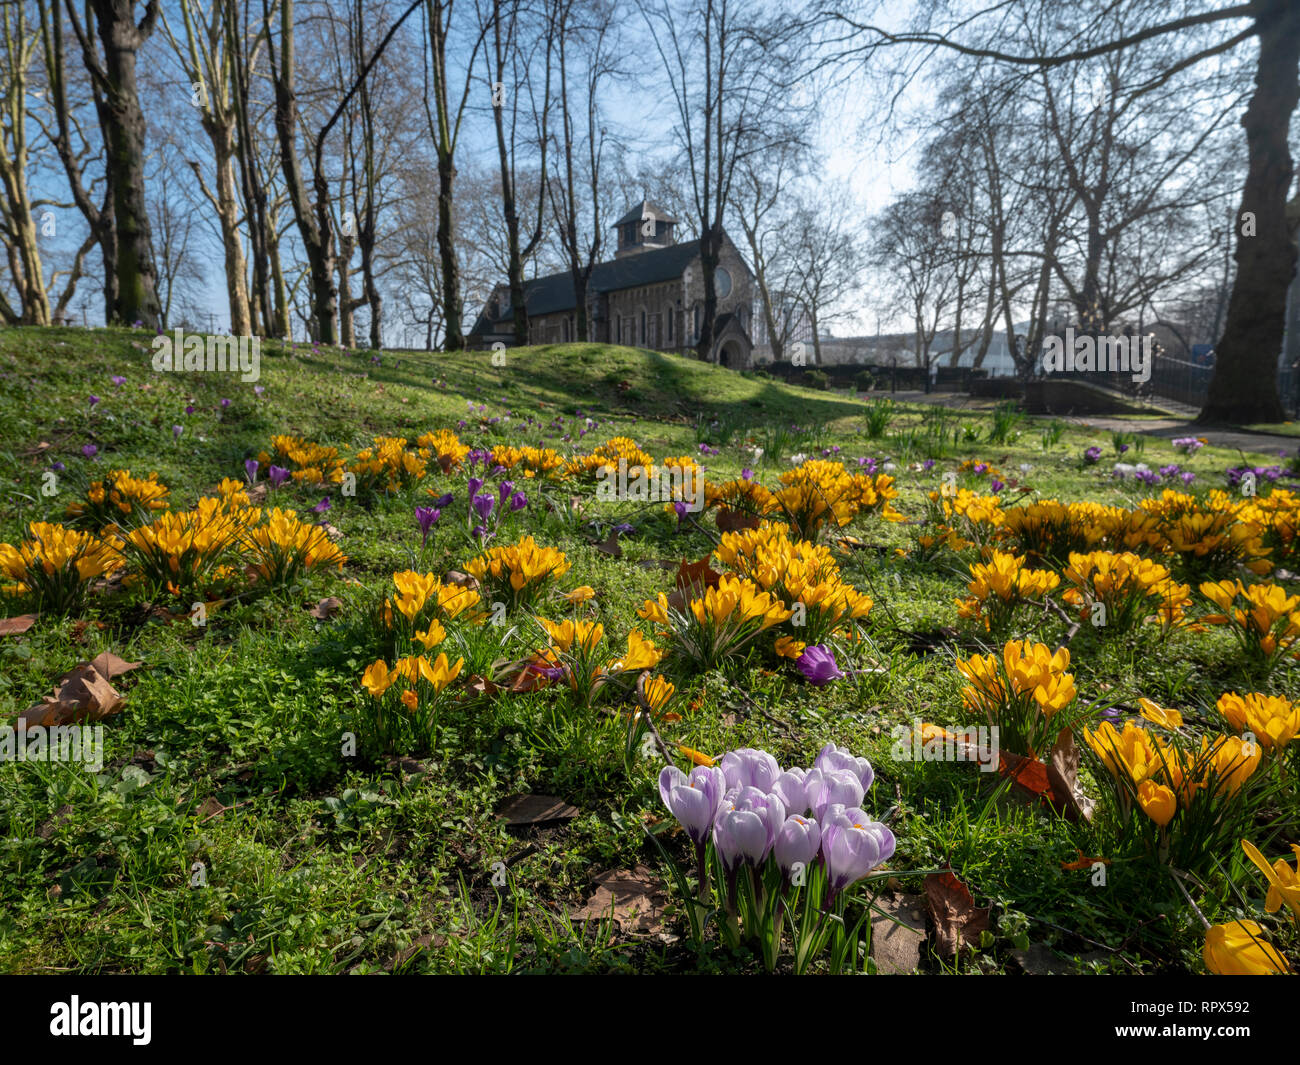 London, St Pancras Old Church graveyard, February 24th 2019, spring flowers are already in bloom due to the unseasonably warm and sunny weather - Stock Image